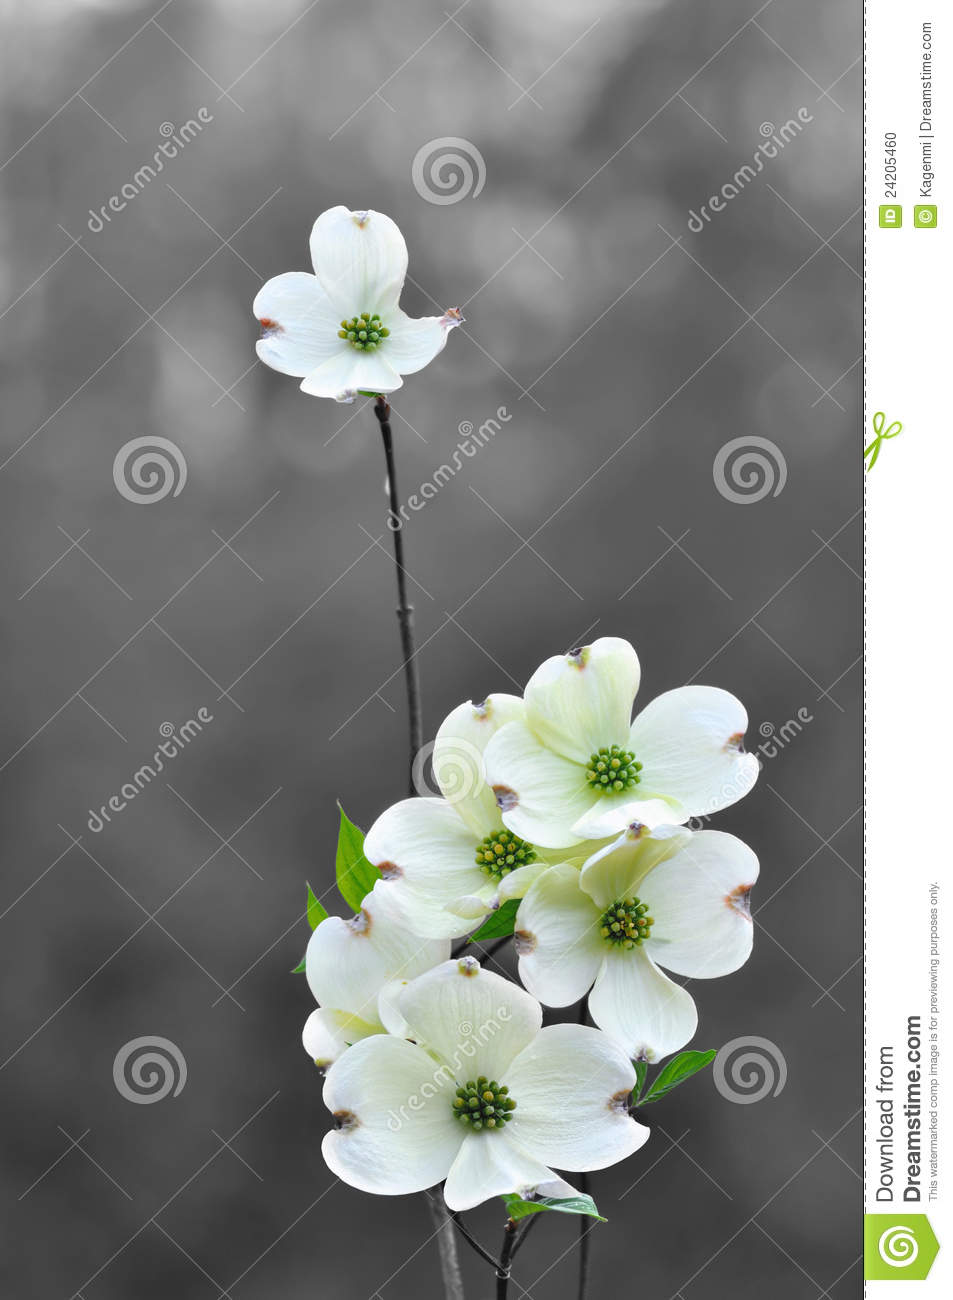 White Dogwood Flowers In Spring Stock Photo Image Of Spring